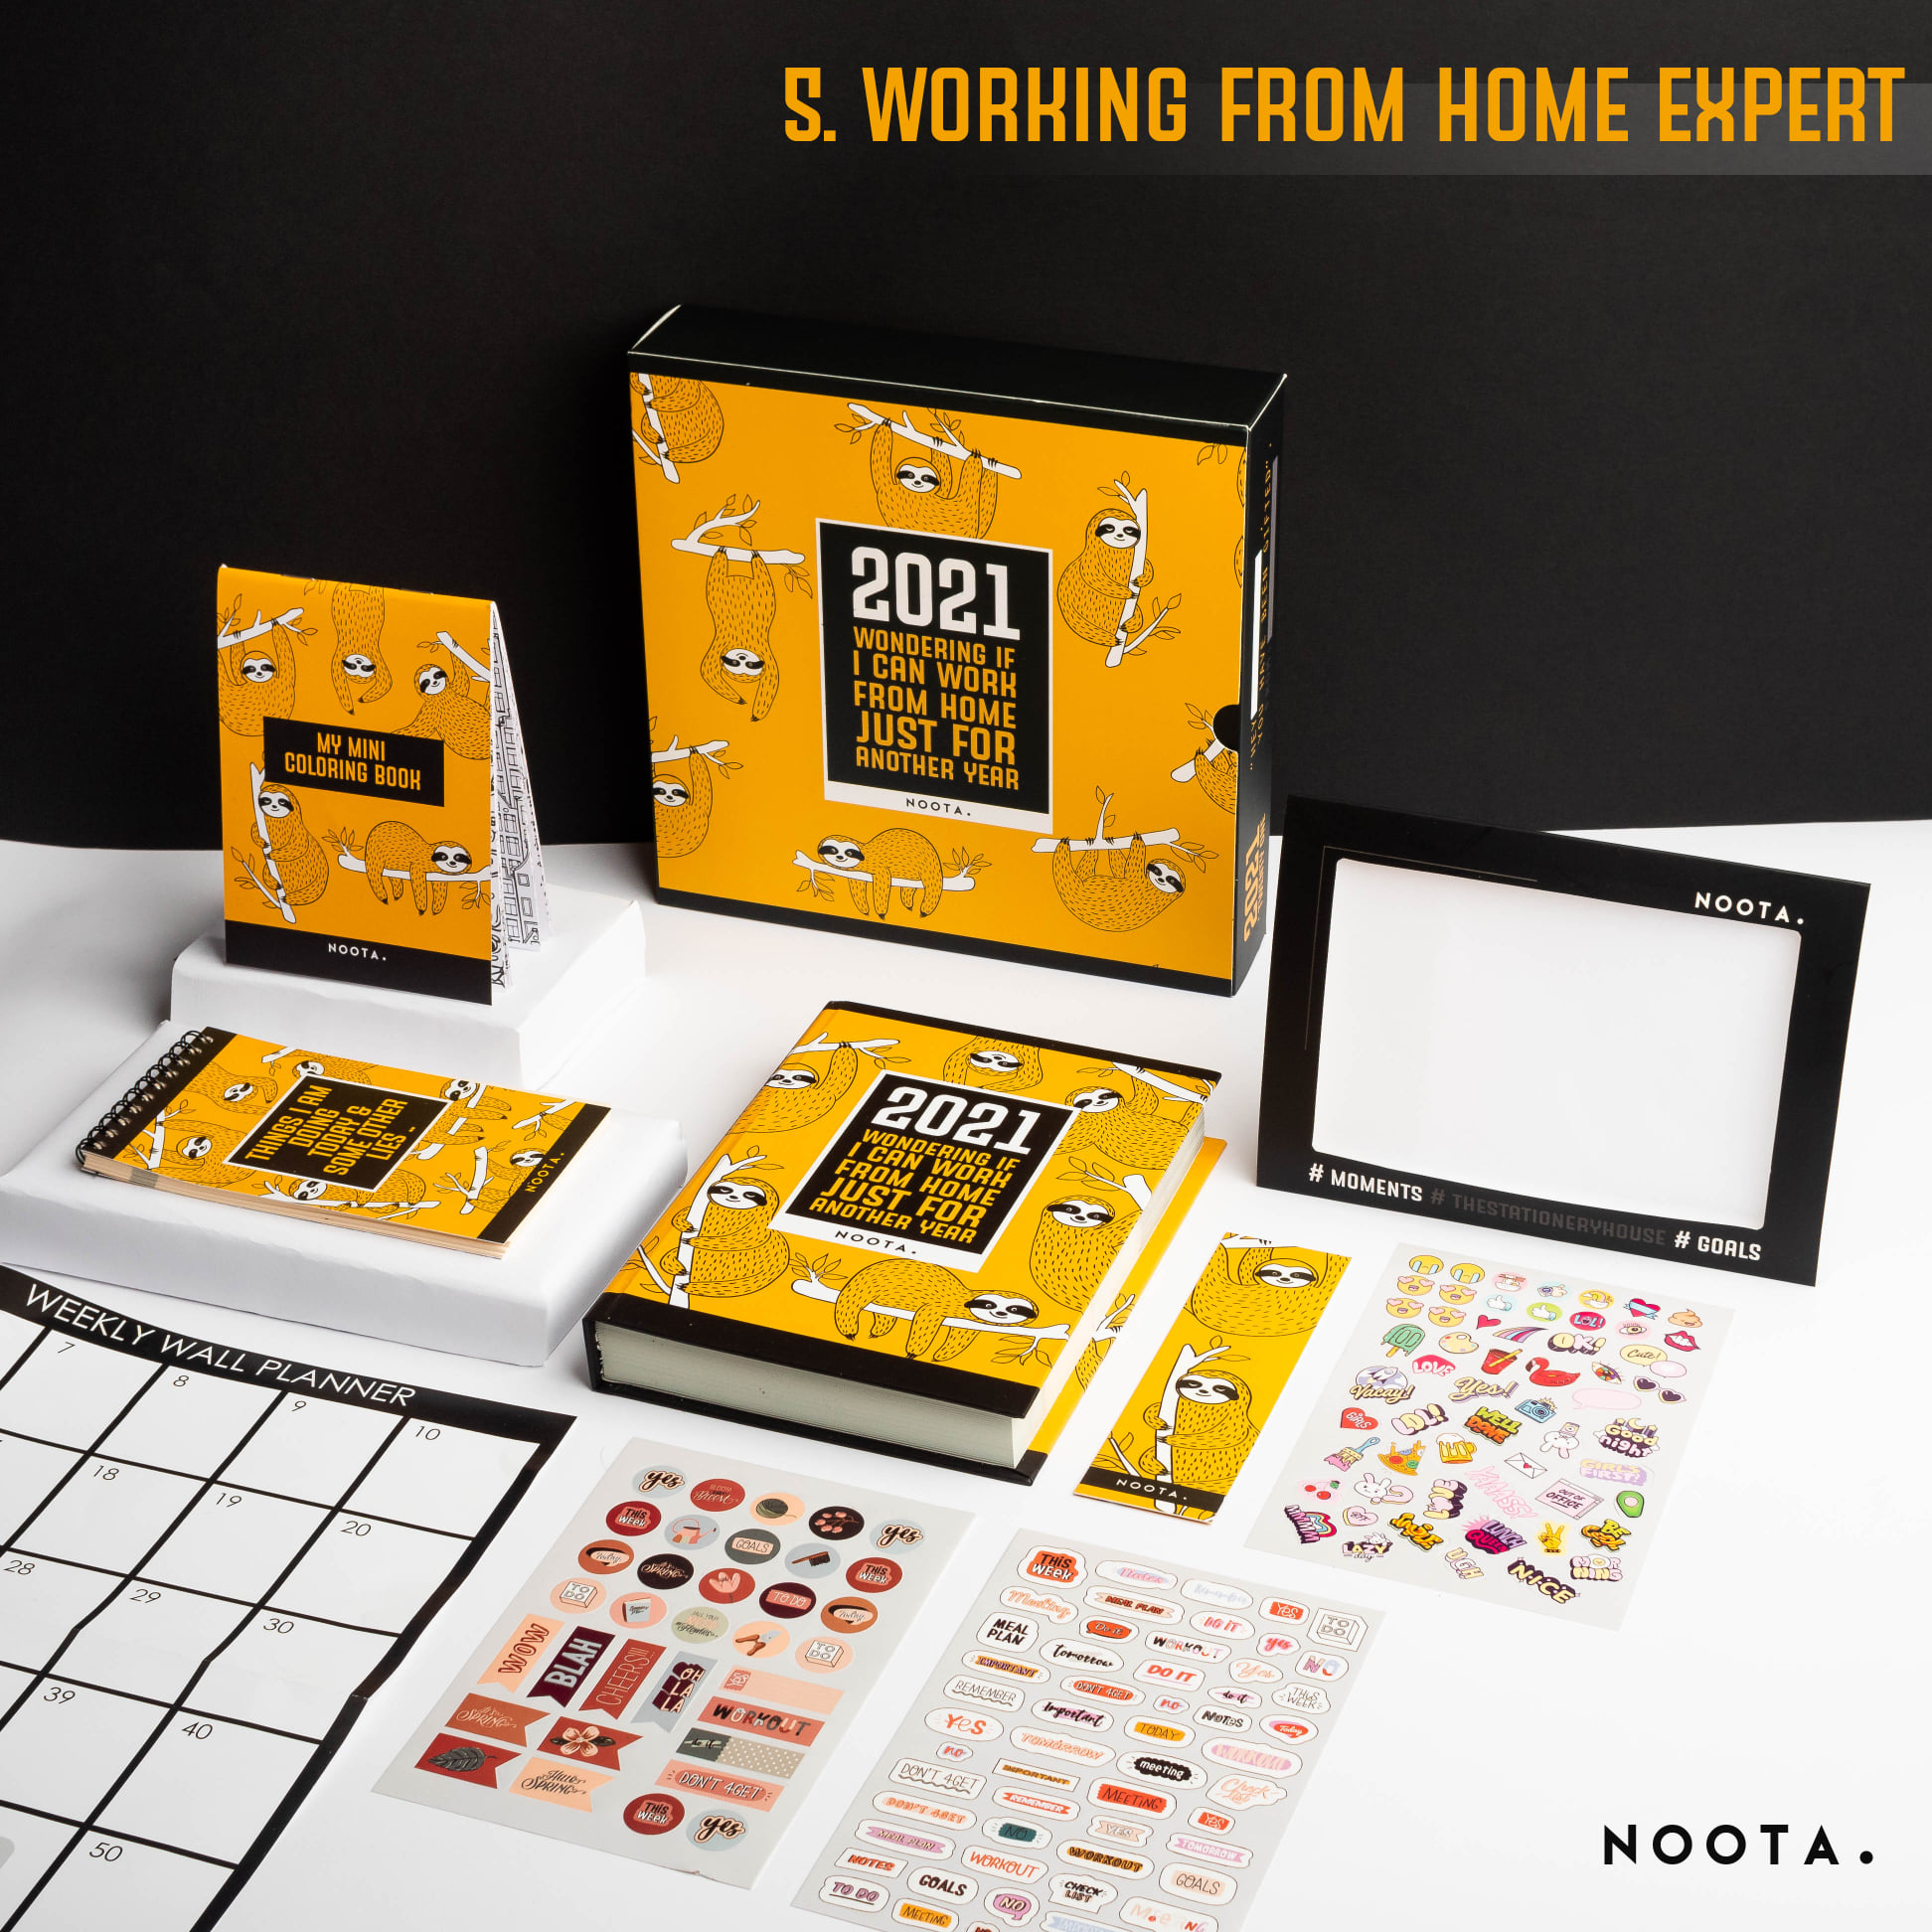 Noota - 2021 - Wondering If I Can Work From Home just for Another years